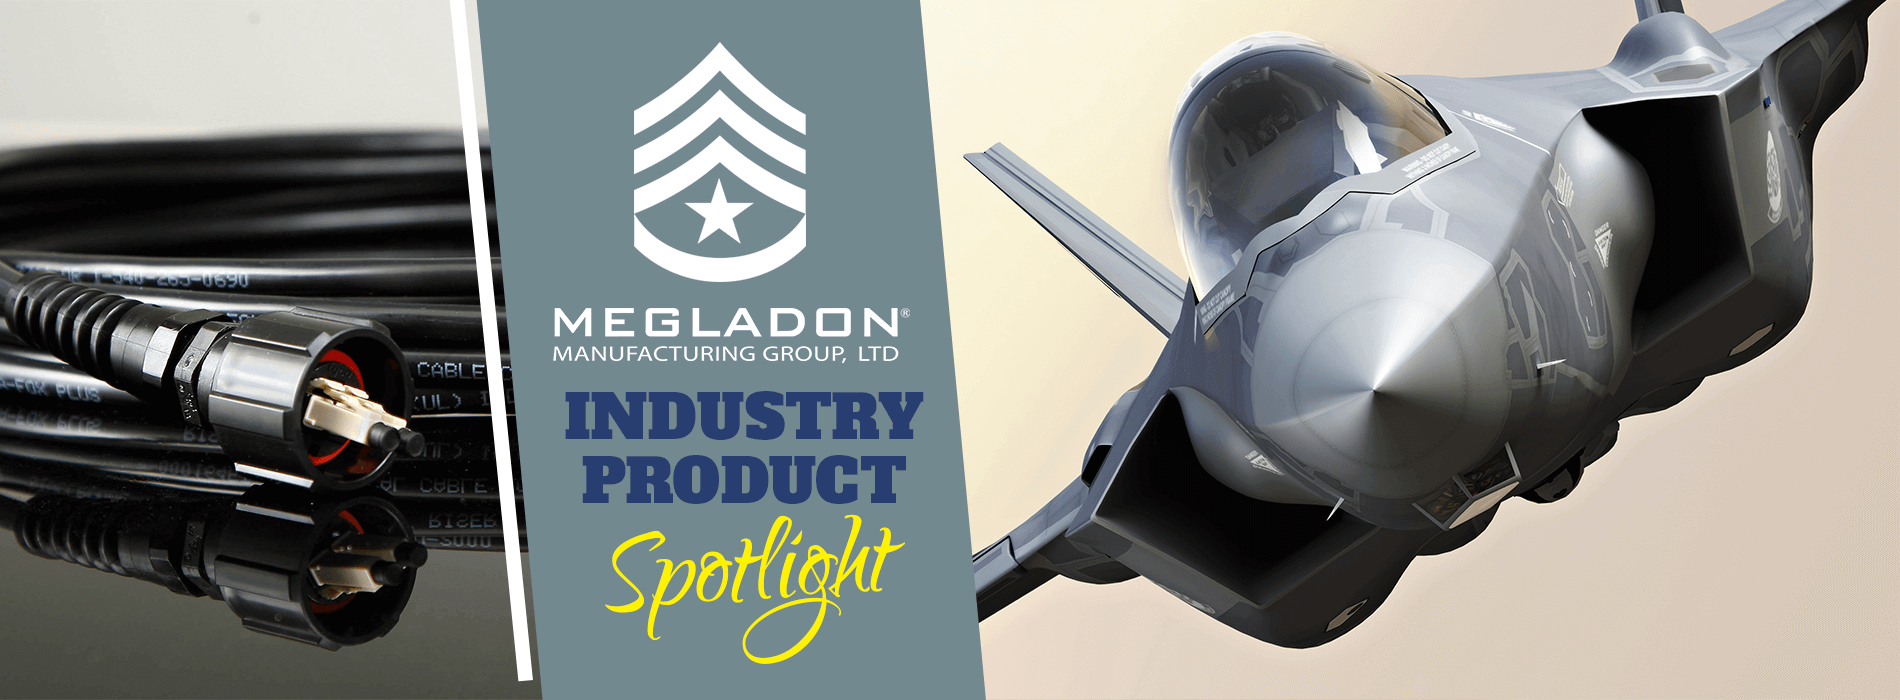 Industry Product Spotlight - Industrial & Military